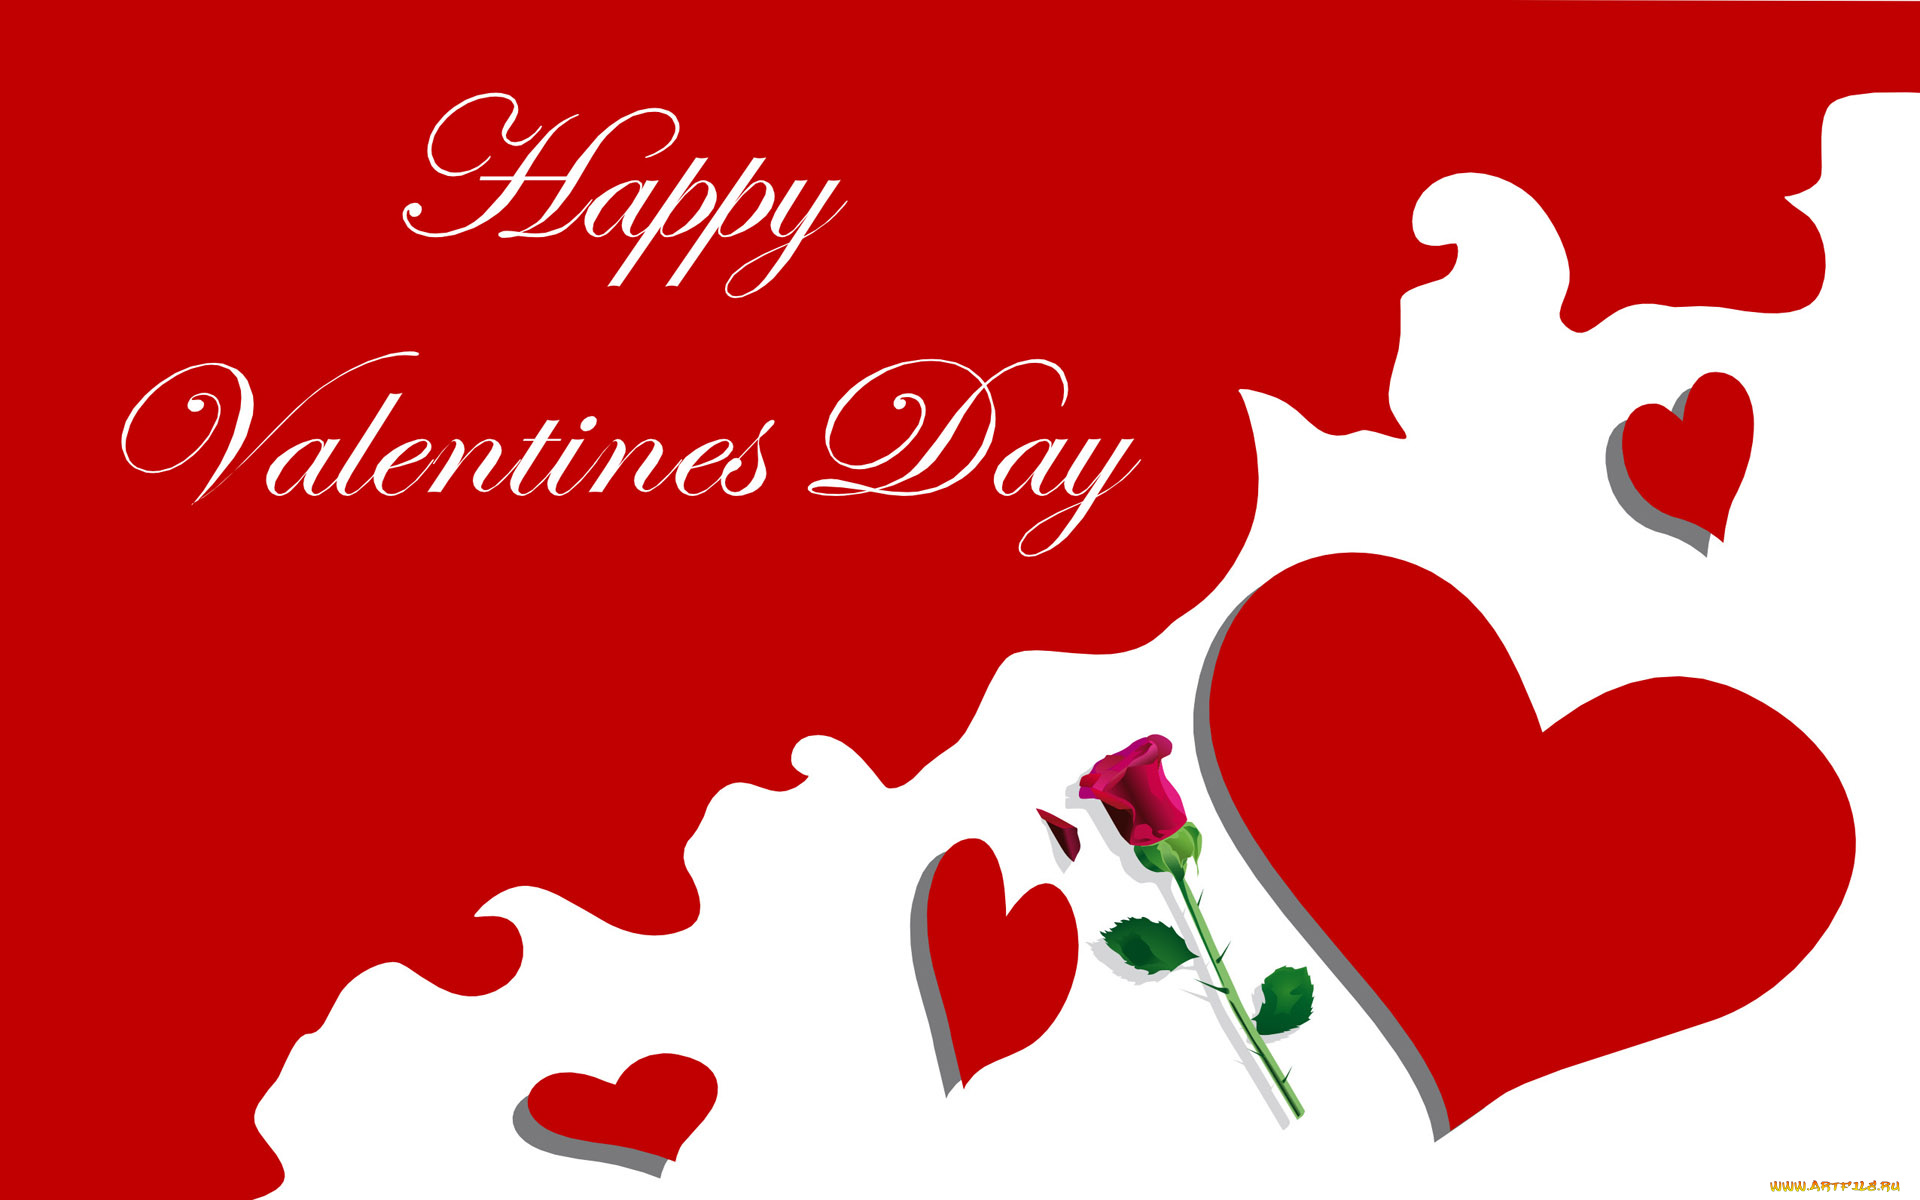 day enjoy valentines day - HD 1600×1000